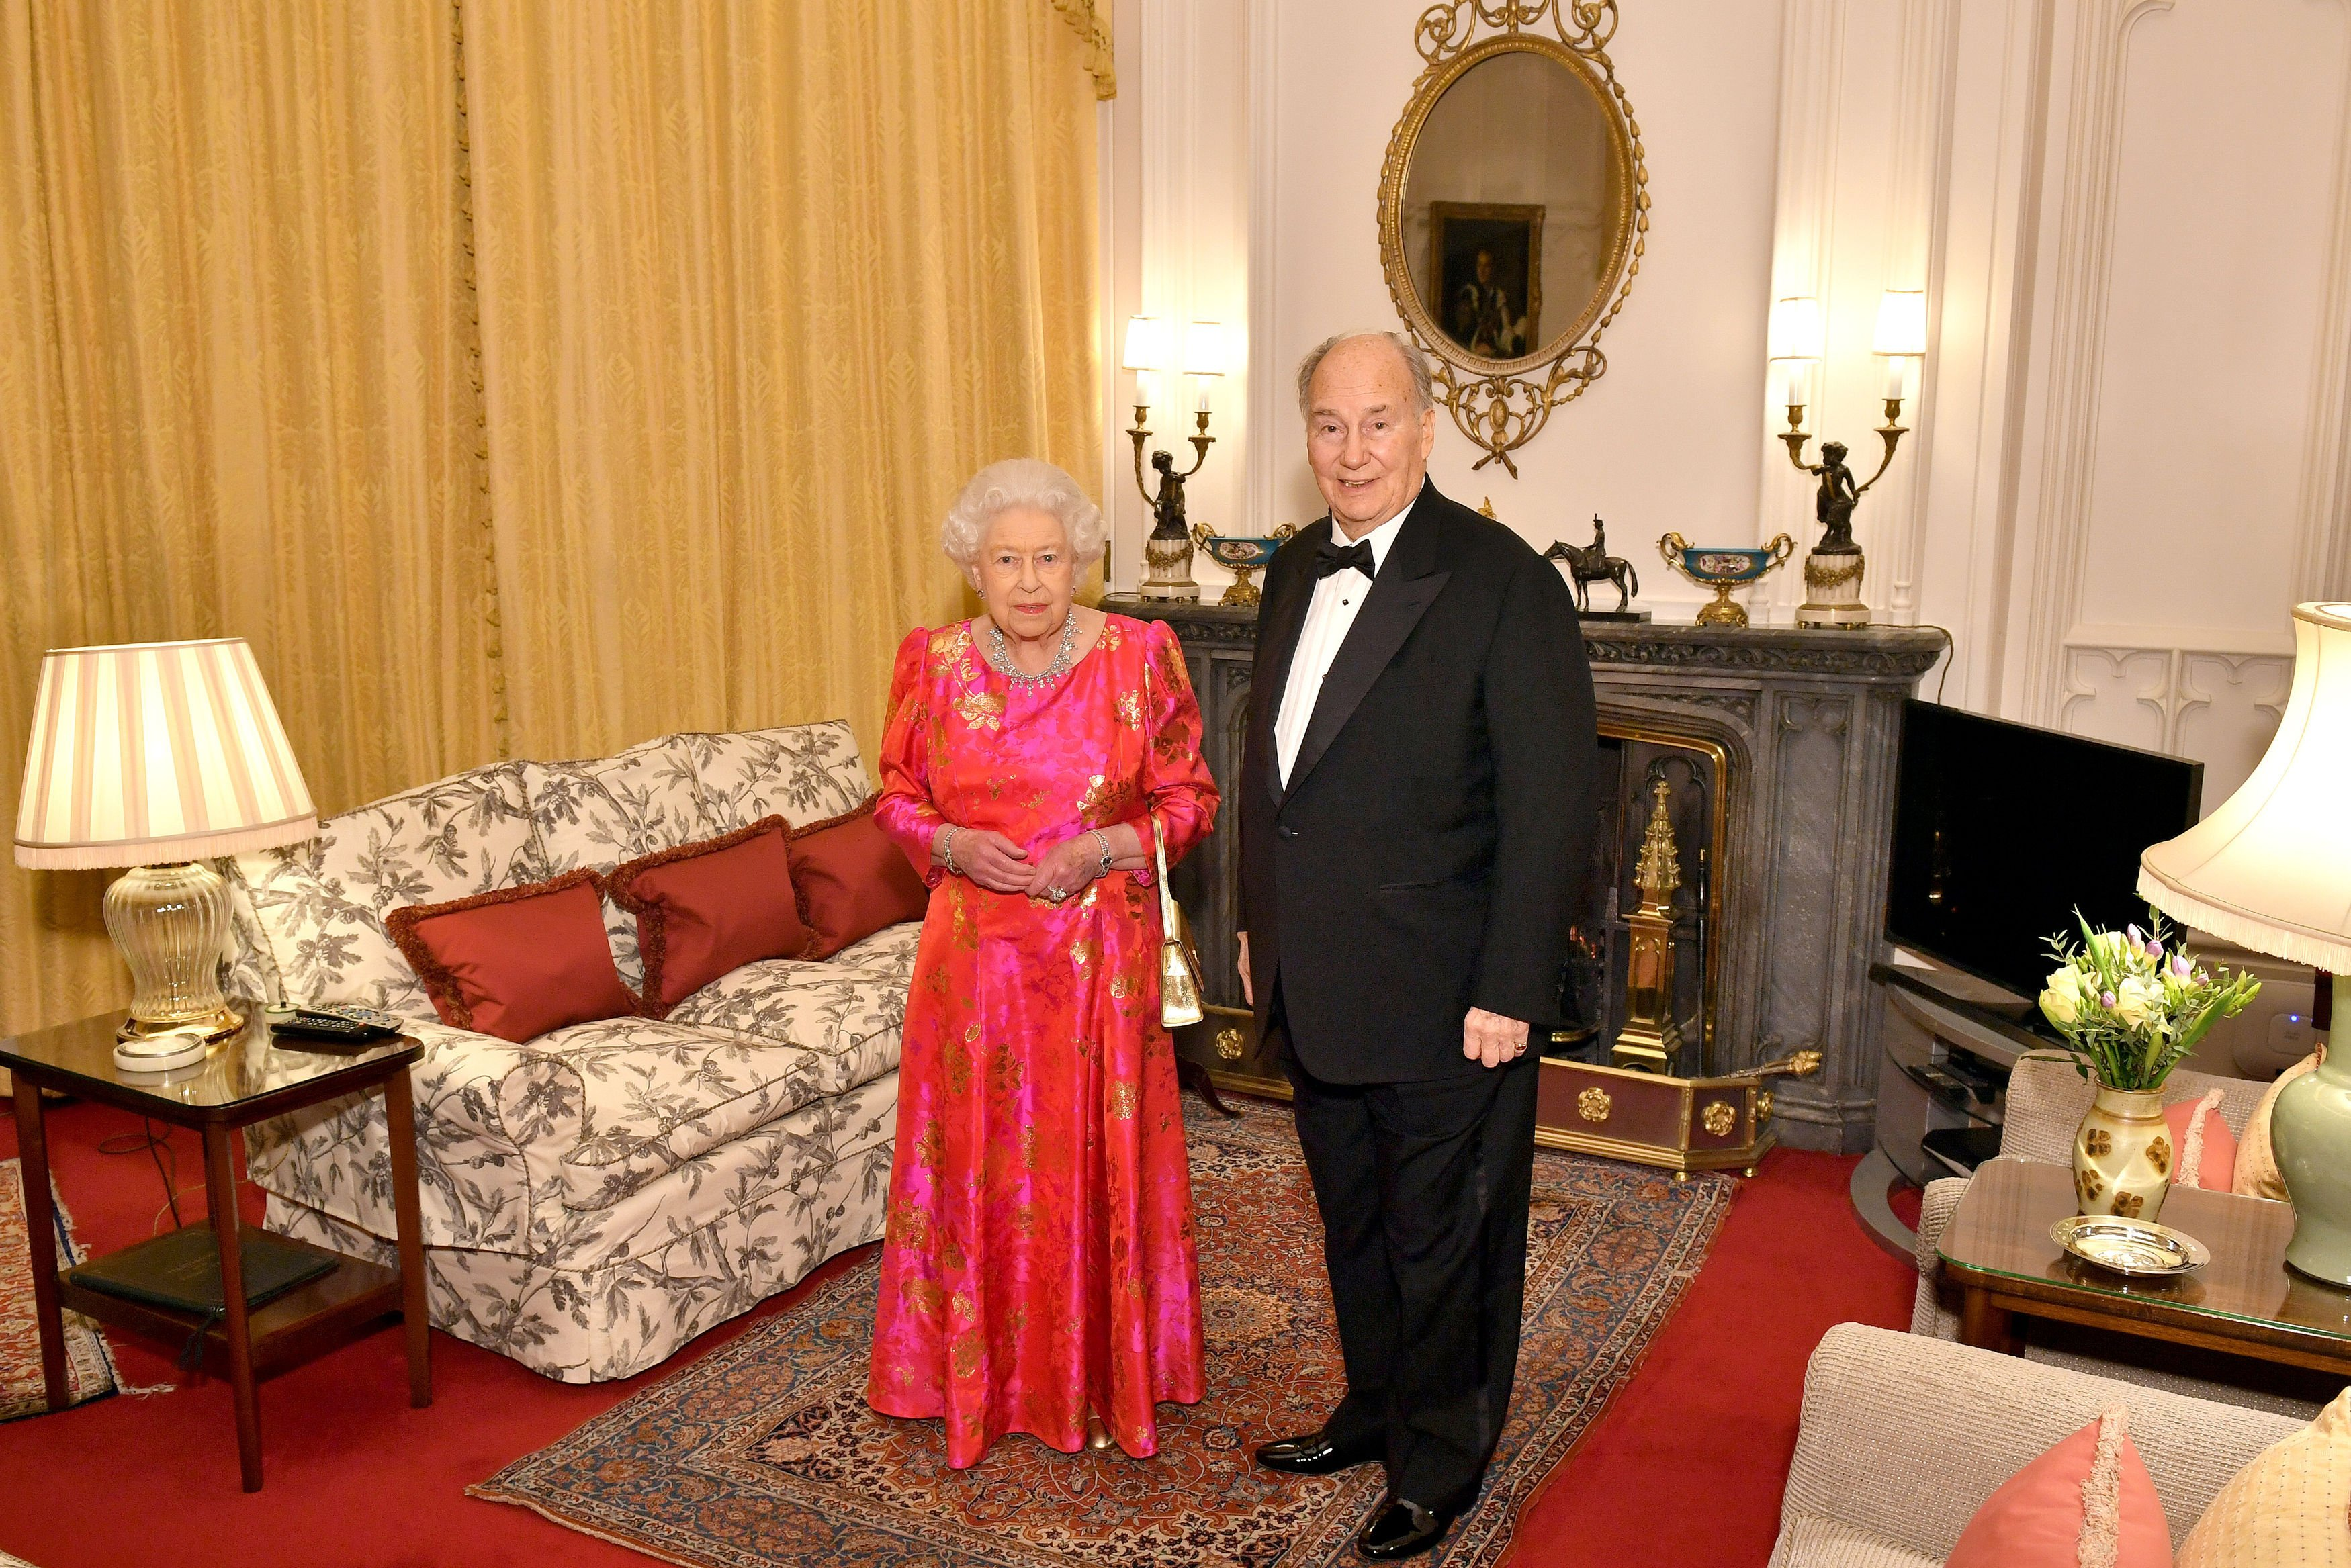 The Queen Elizabeth II and the Aga Khan in the Oak Room at Windsor Castle before she hosts a private dinner in honour of the diamond jubilee of his leadership as Imam of the Shia Ismaili Muslim Community., Image: 365524198, License: Rights-managed, Restrictions: , Model Release: no, Credit line: Profimedia, Press Association